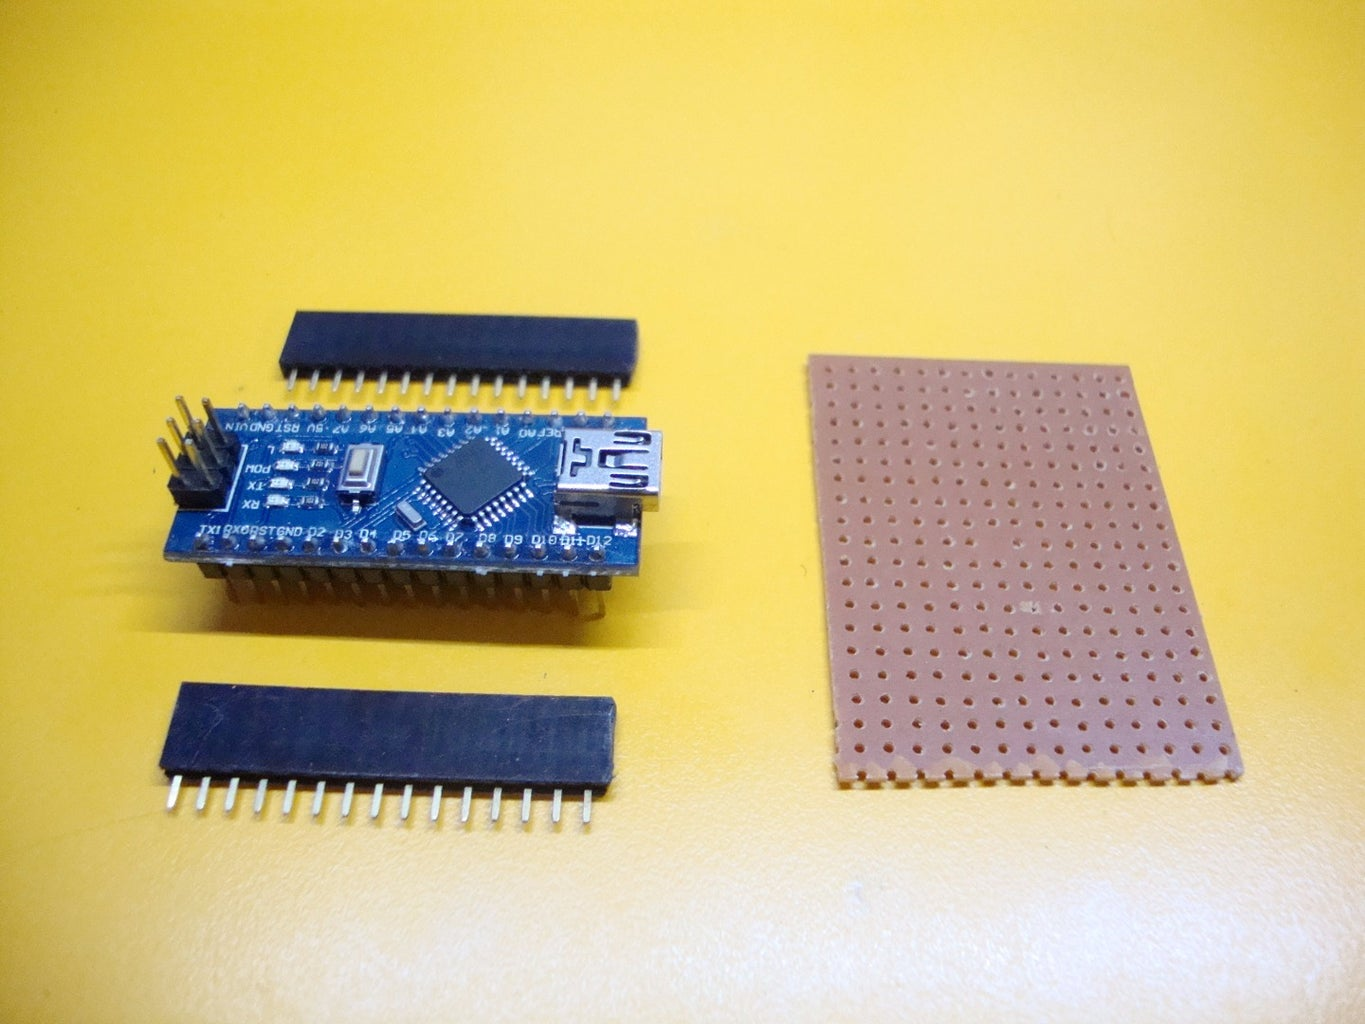 Making a Shield for Arduino